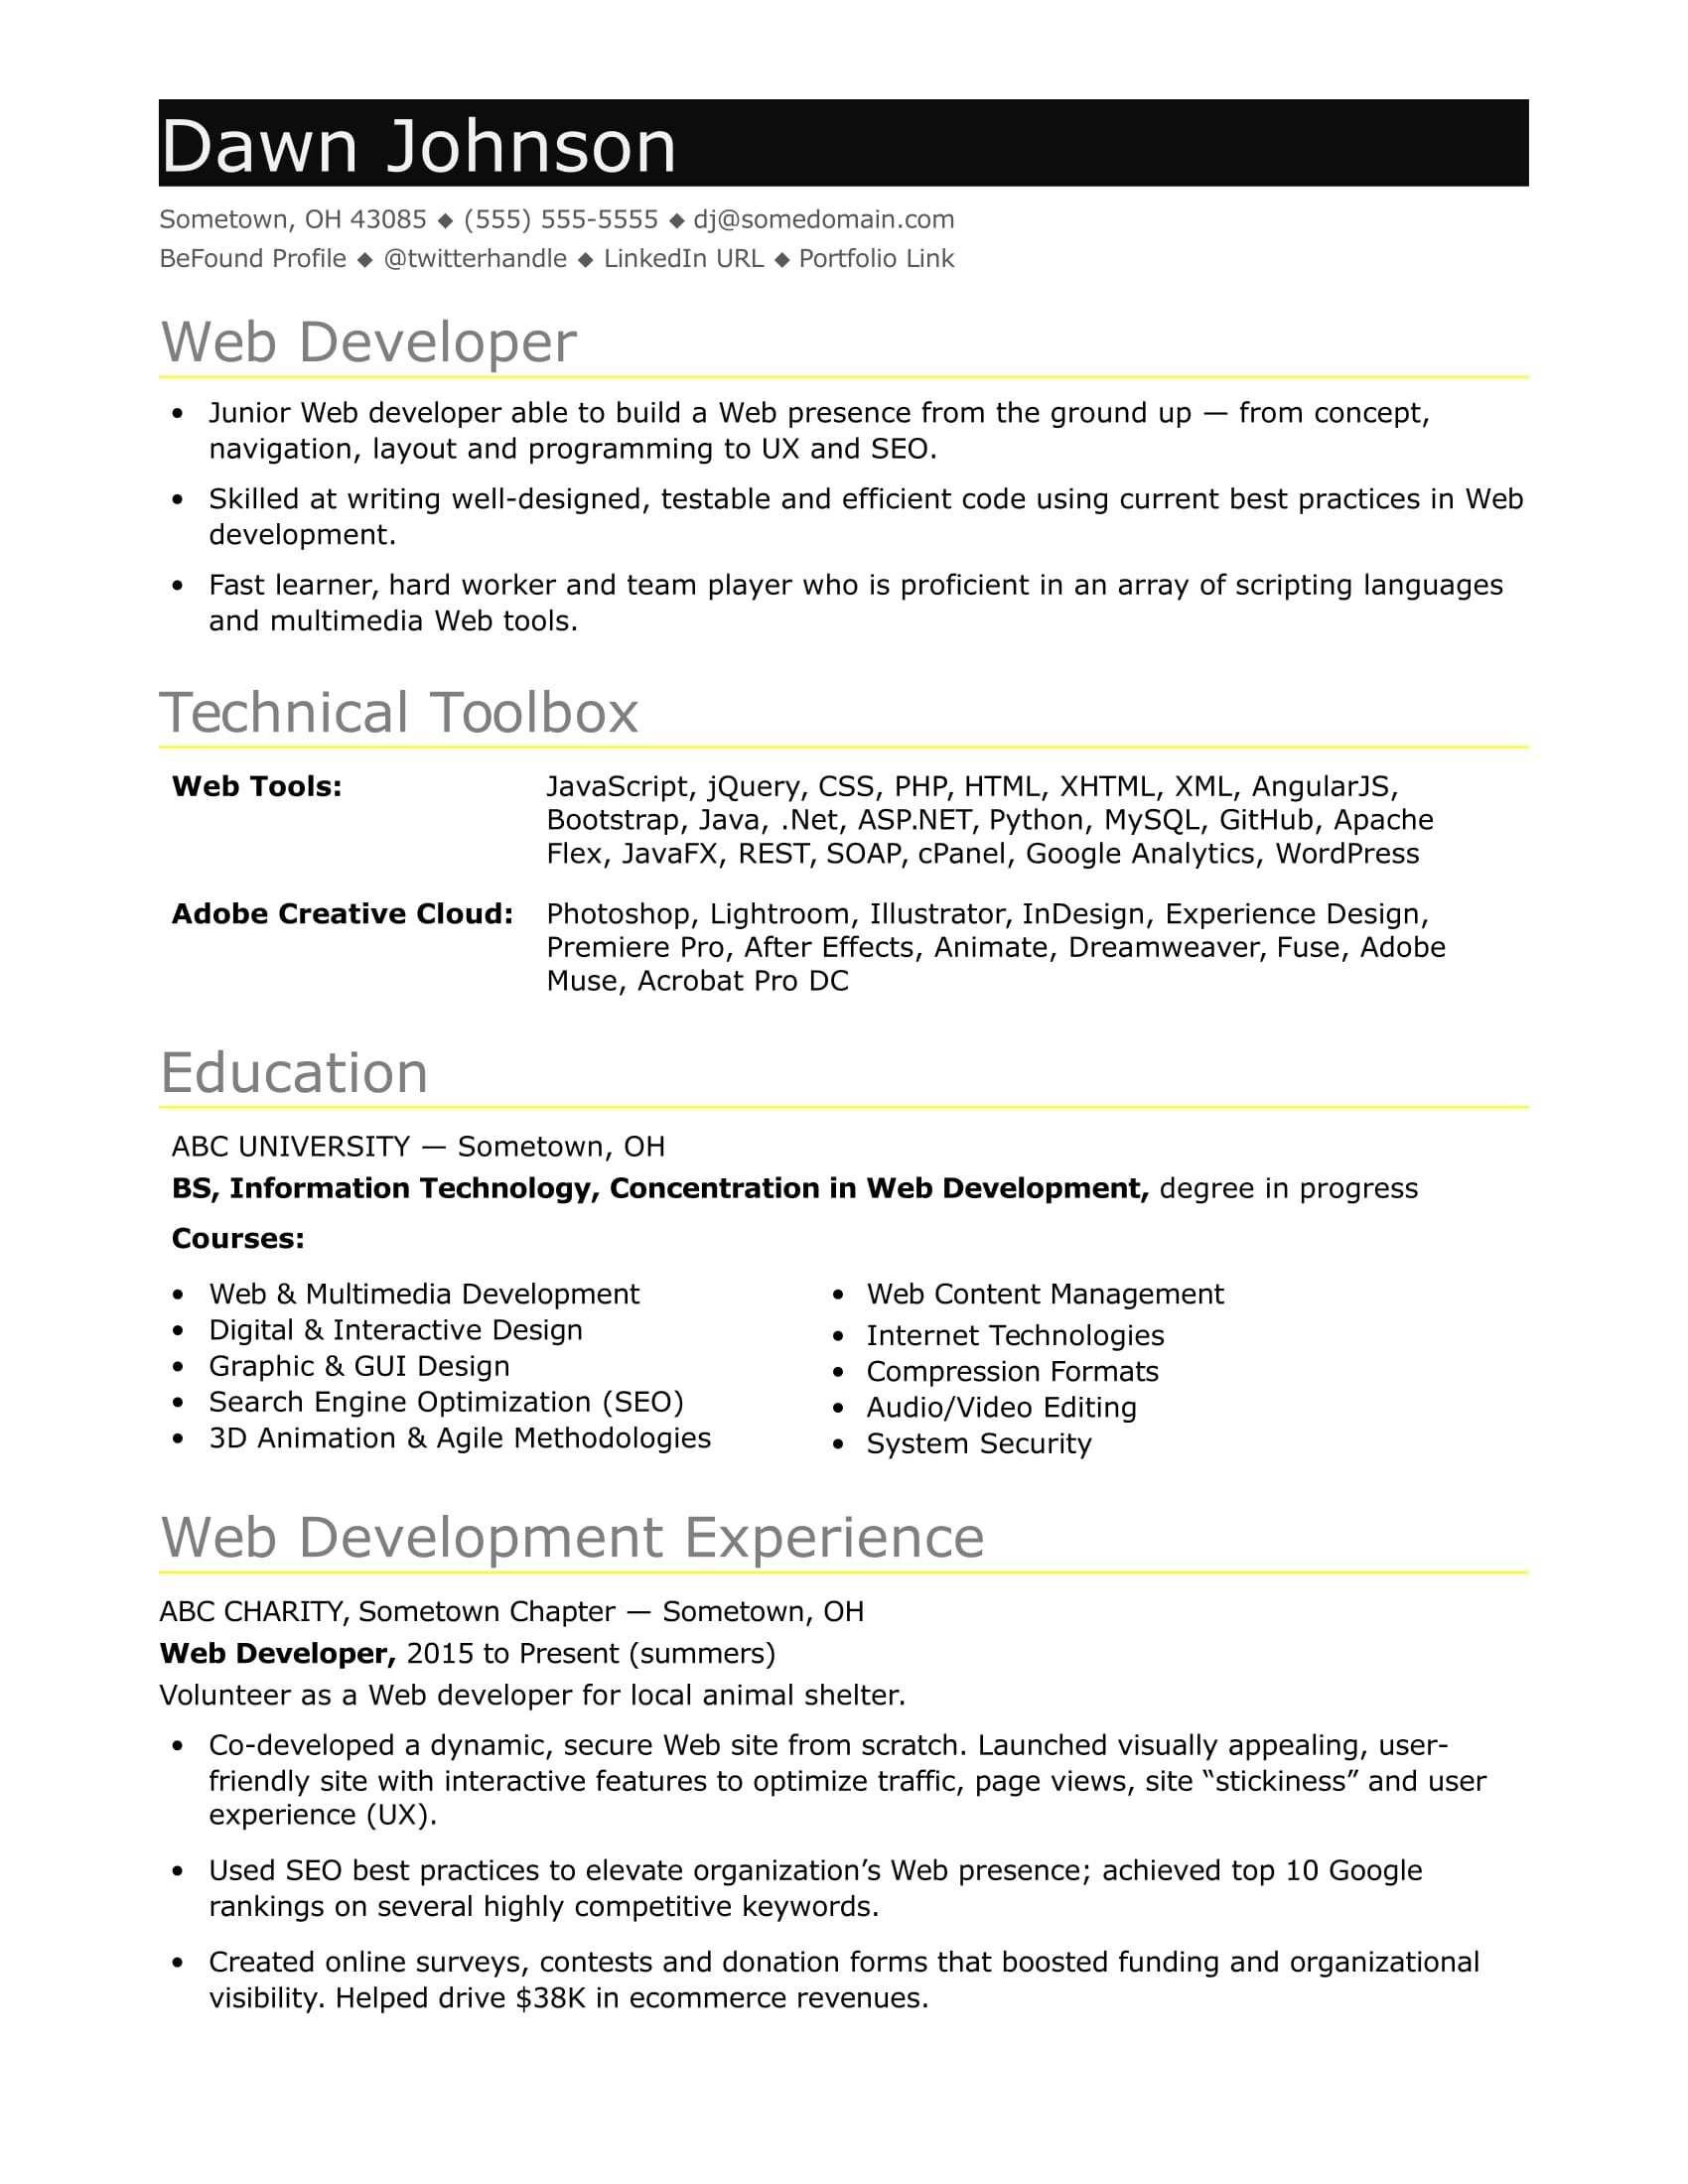 Sample Resume for an Entry-Level IT Developer | Monster.com